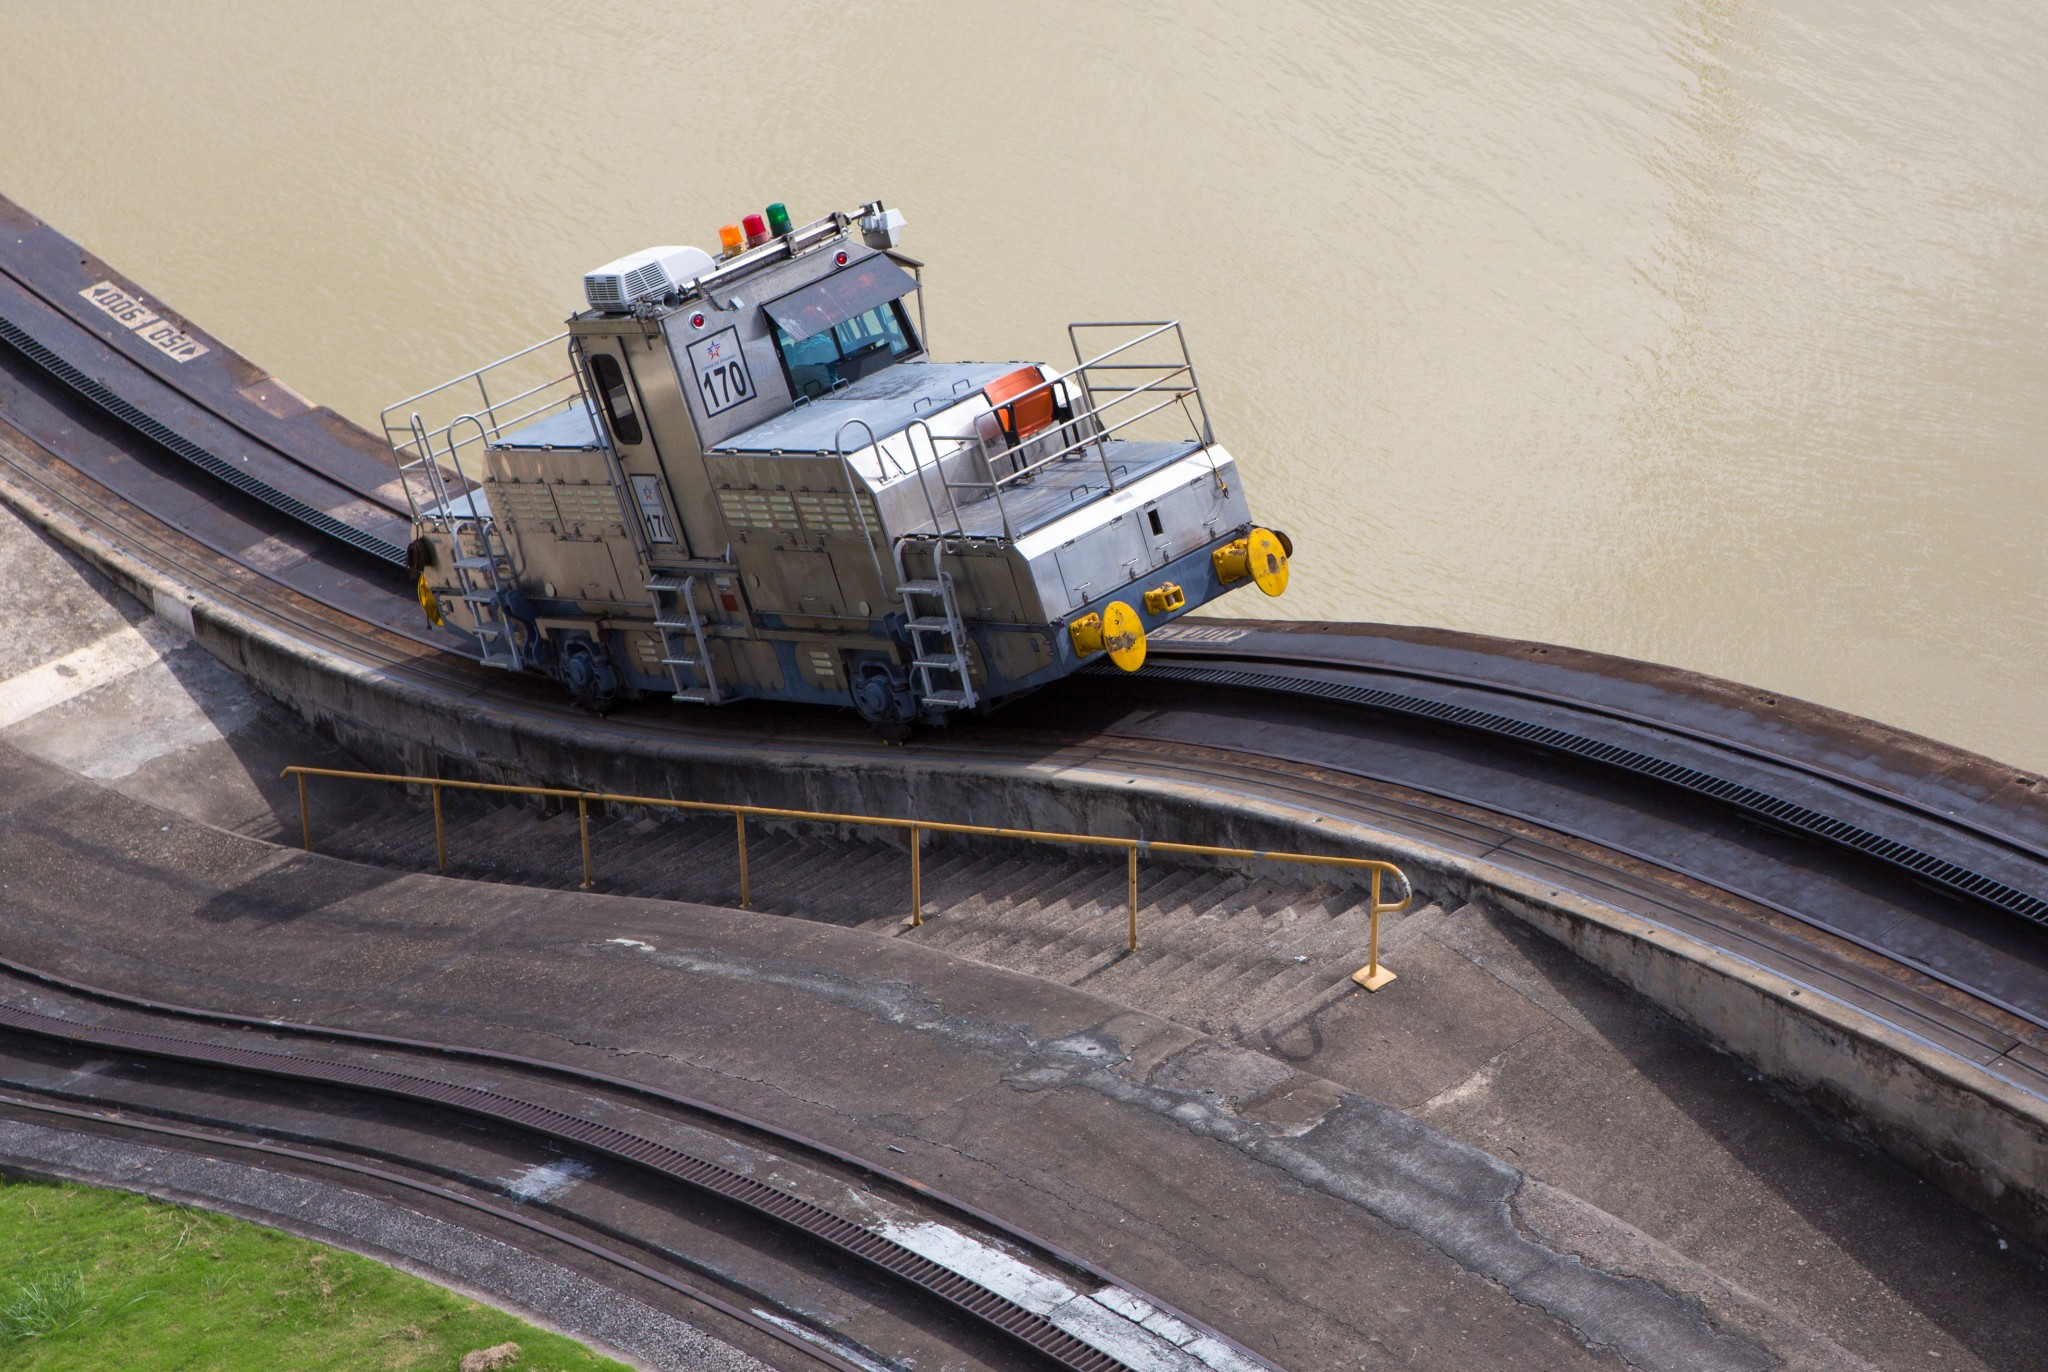 Everyday Economics and a wider and deeper Panama Canal will change the invisible lines that show the world's supply chains.